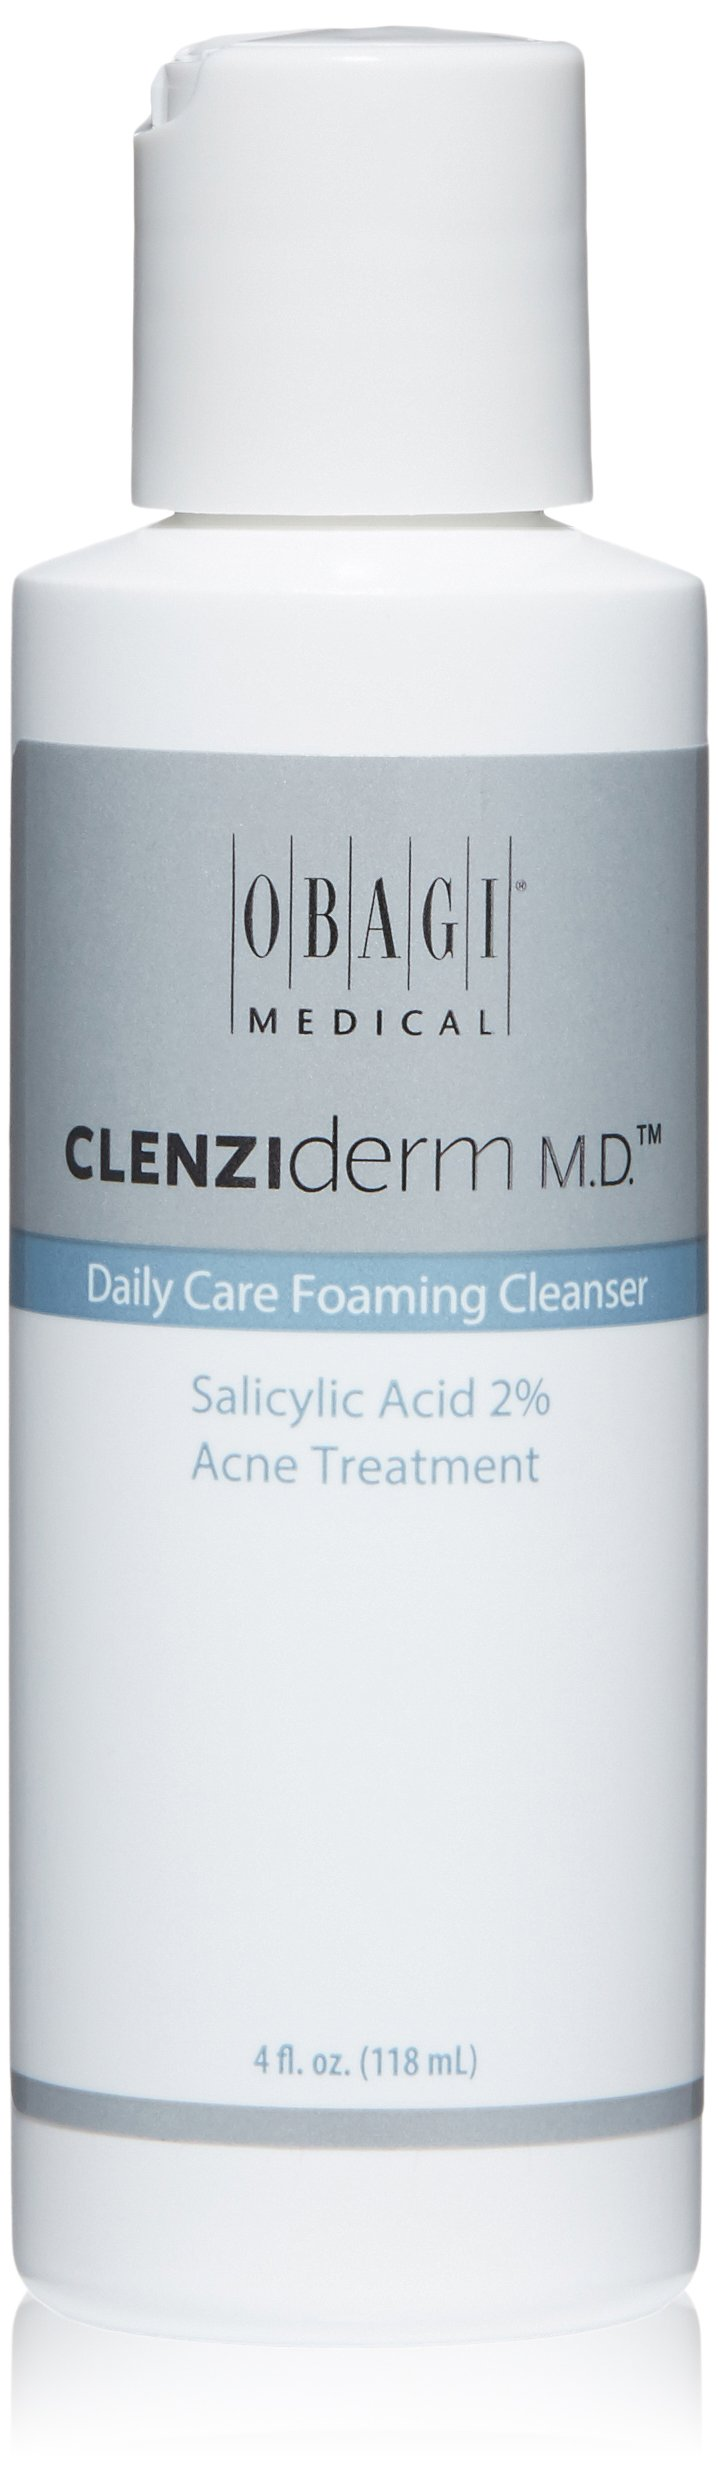 Obagi CLENZIderm M.D. Daily Care Foaming Cleanser Salicylic Acid 2% Acne Treatment, 4 Fl Oz by Obagi Medical